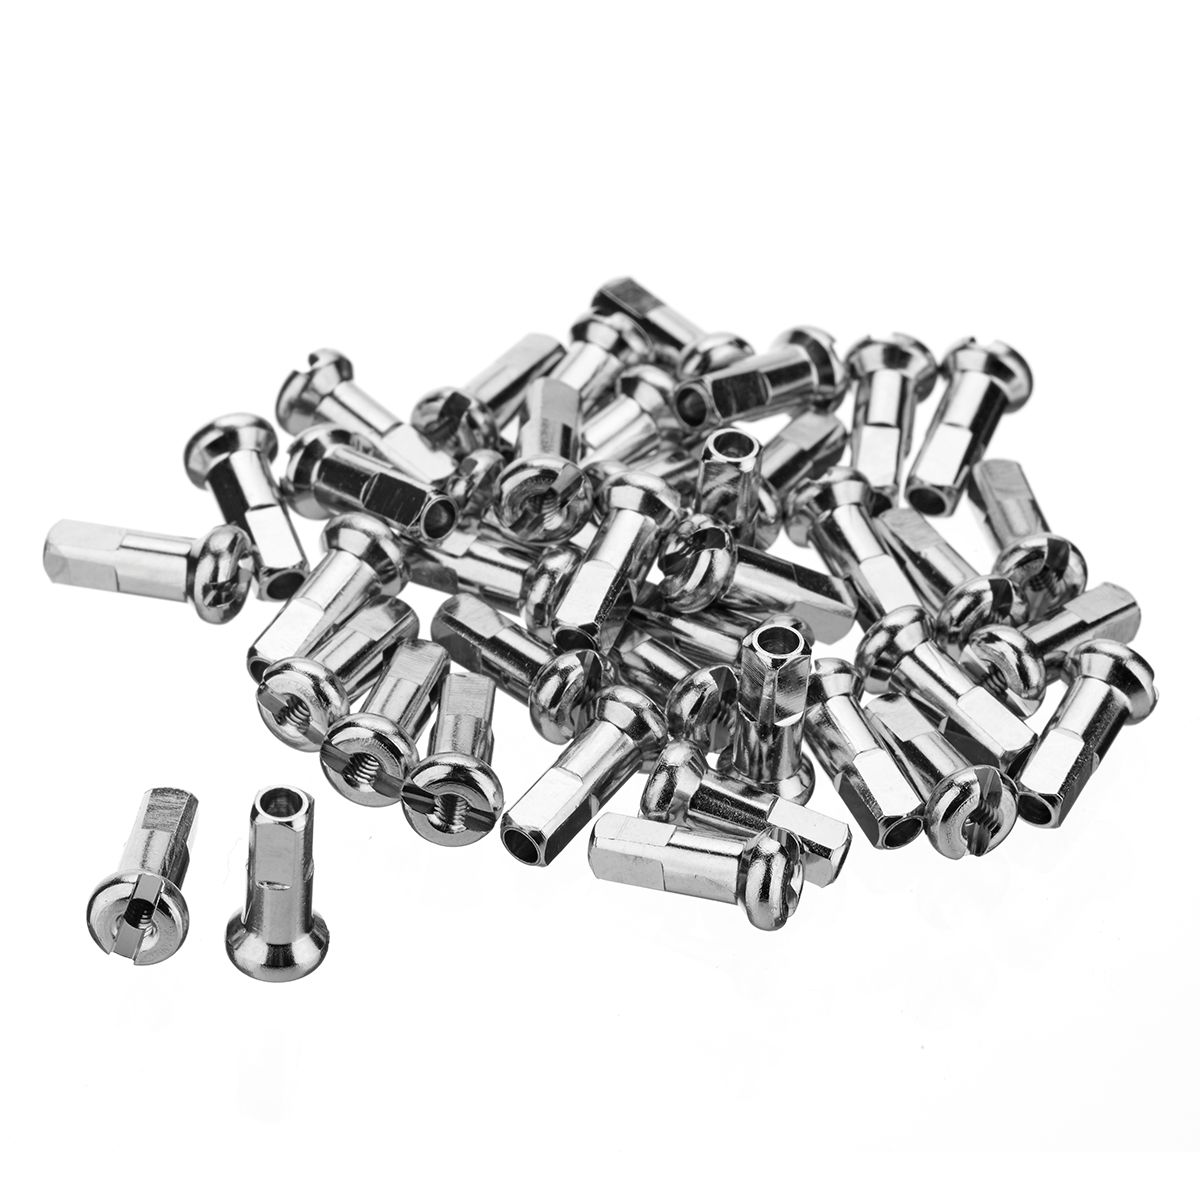 BRASS SPOKE NIPPLES SILVER / 40 PCS